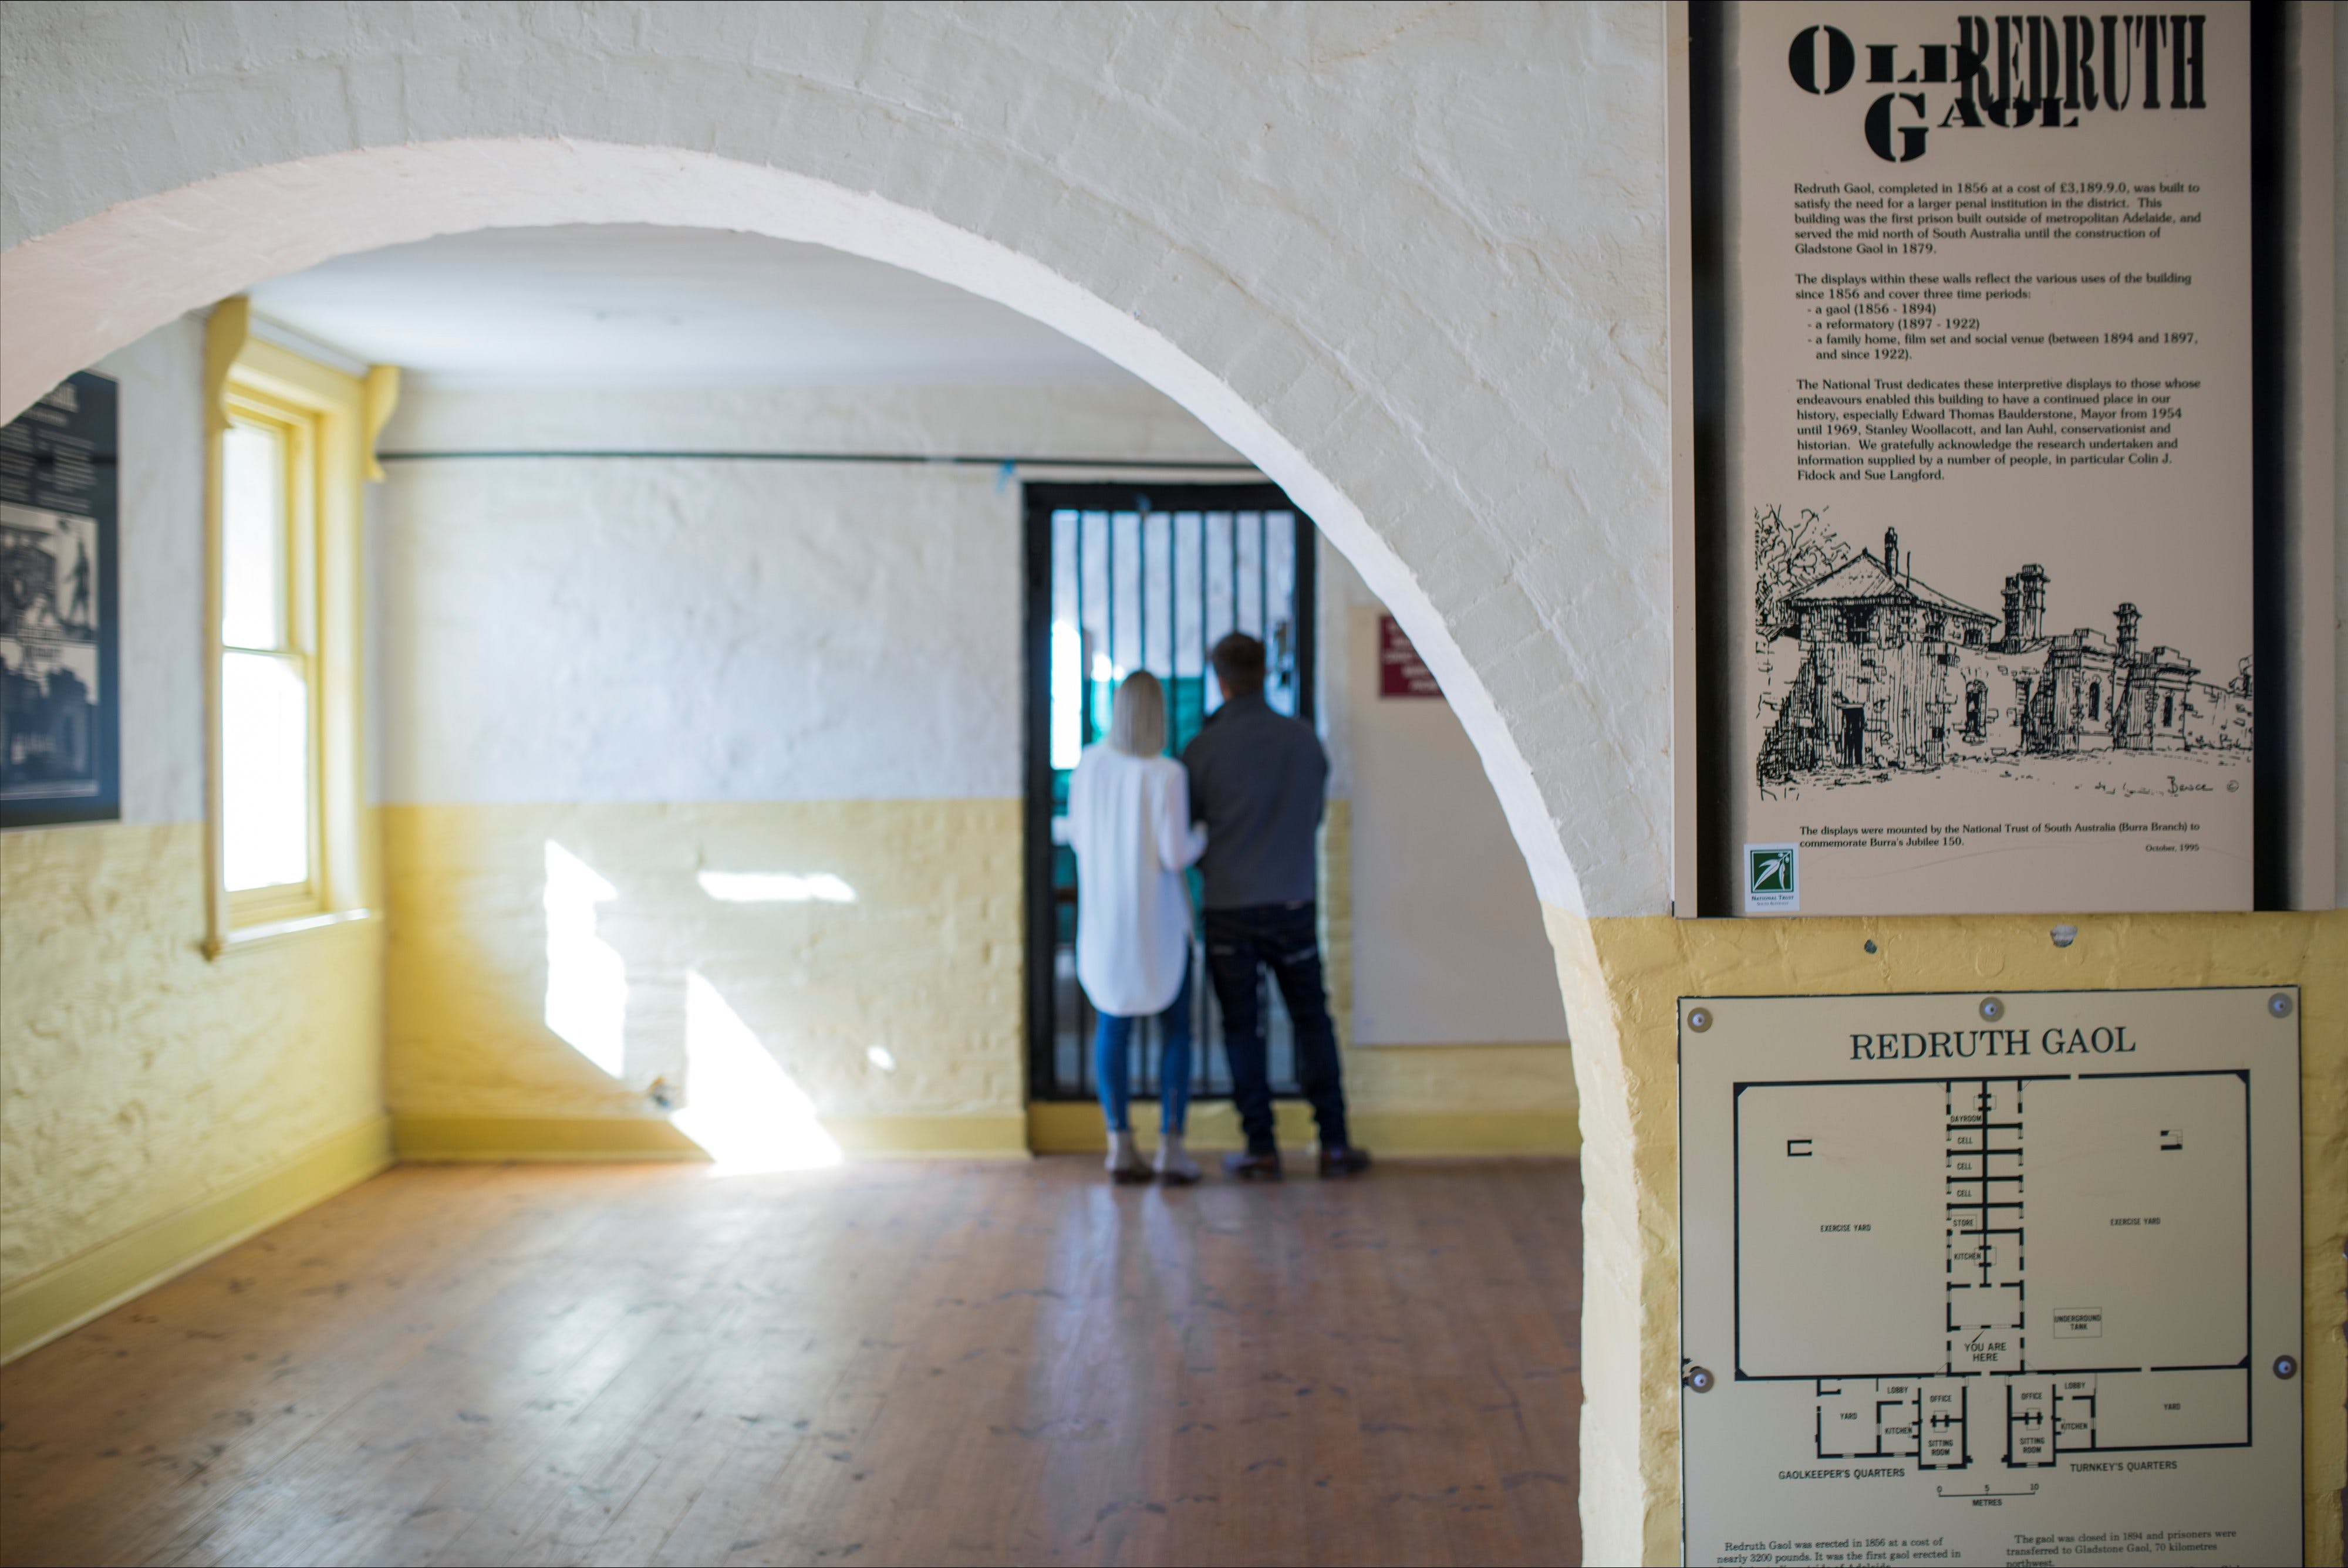 Redruth Gaol - Broome Tourism